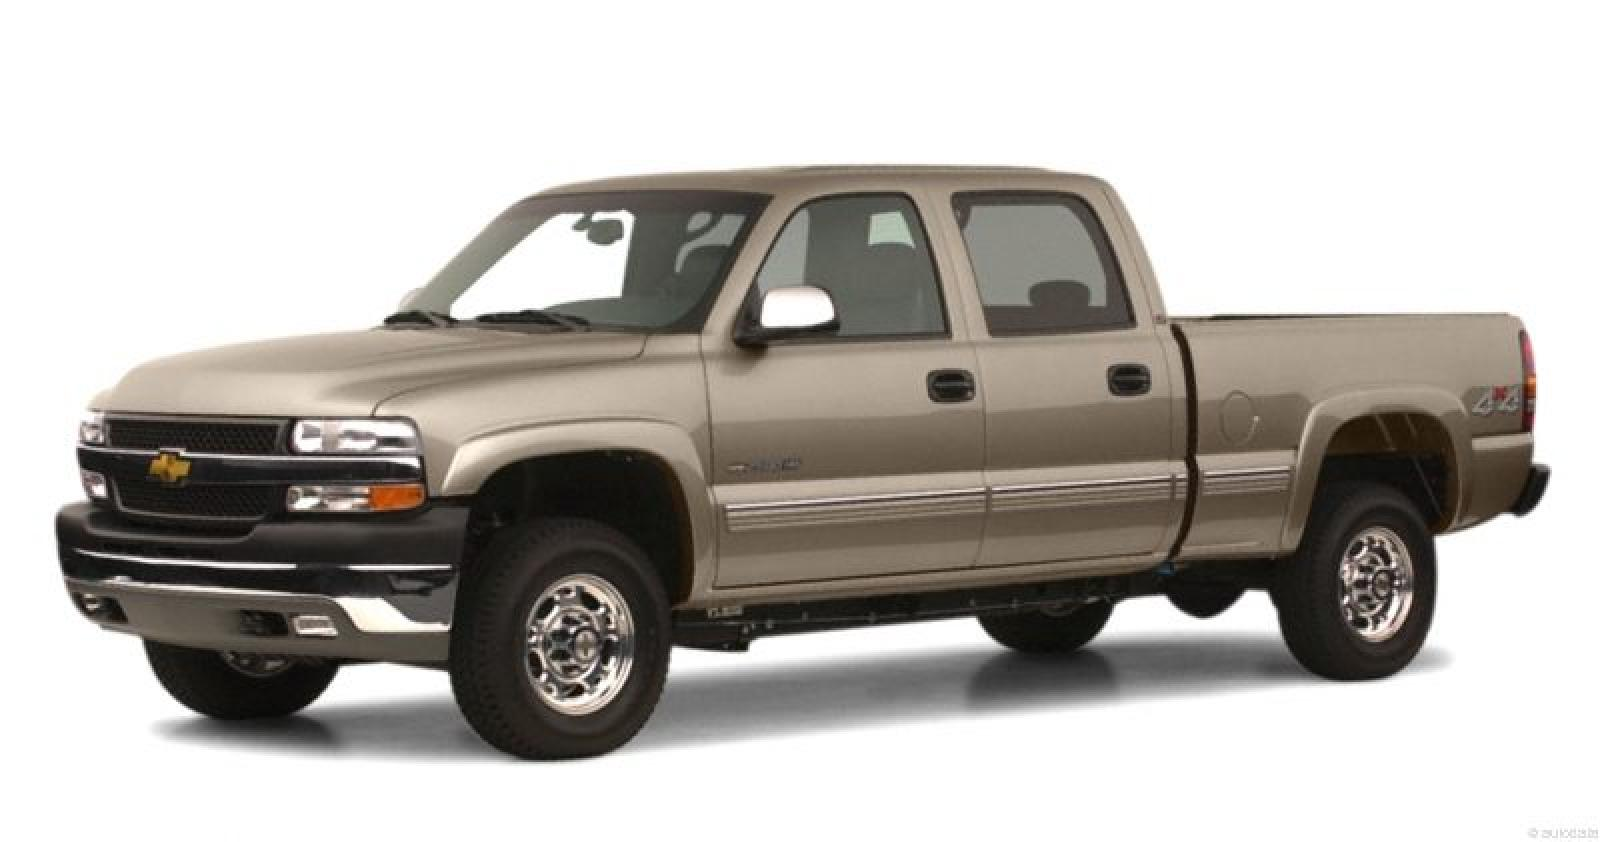 2001 Chevrolet Silverado 2500HD - Information and photos - ZombieDrive